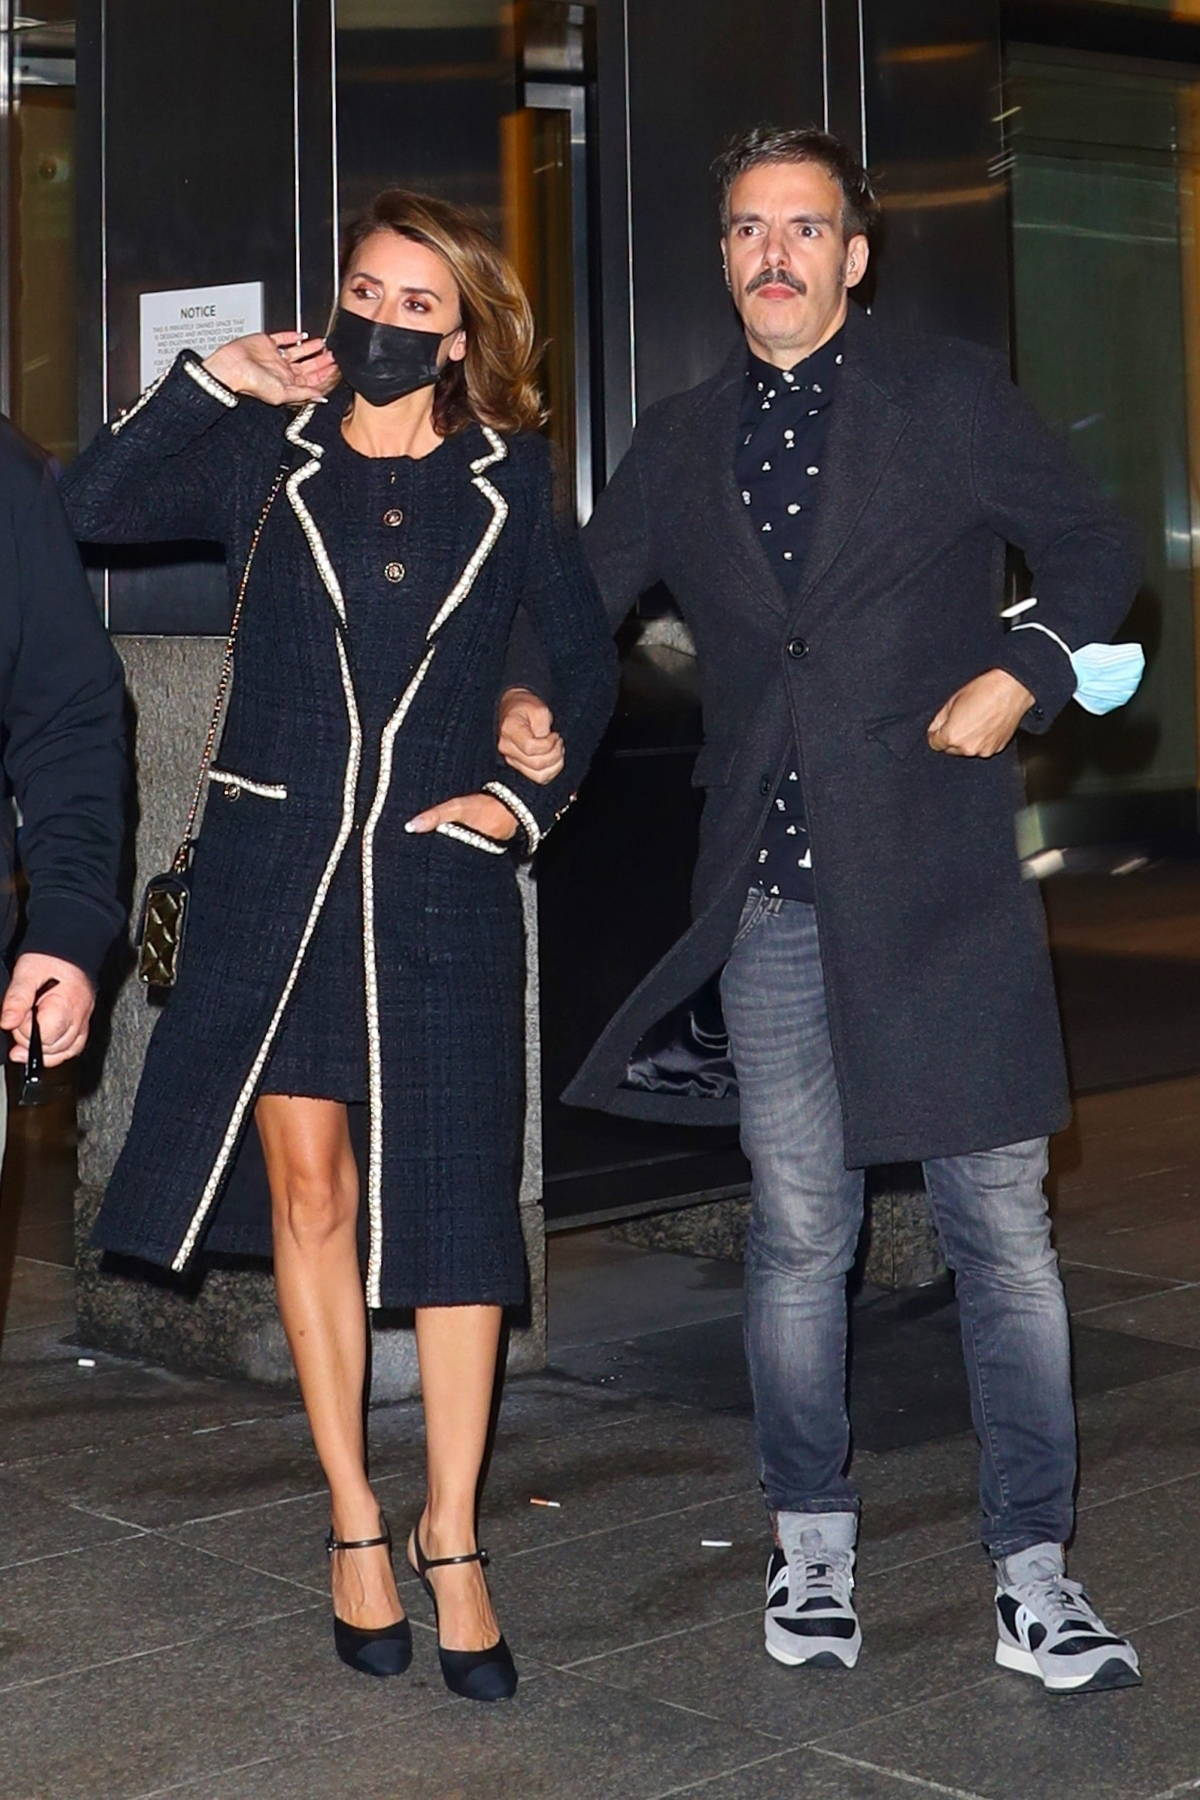 Penelope seen leaving after dinner with friends at Nobu Fifty Seven in New York City